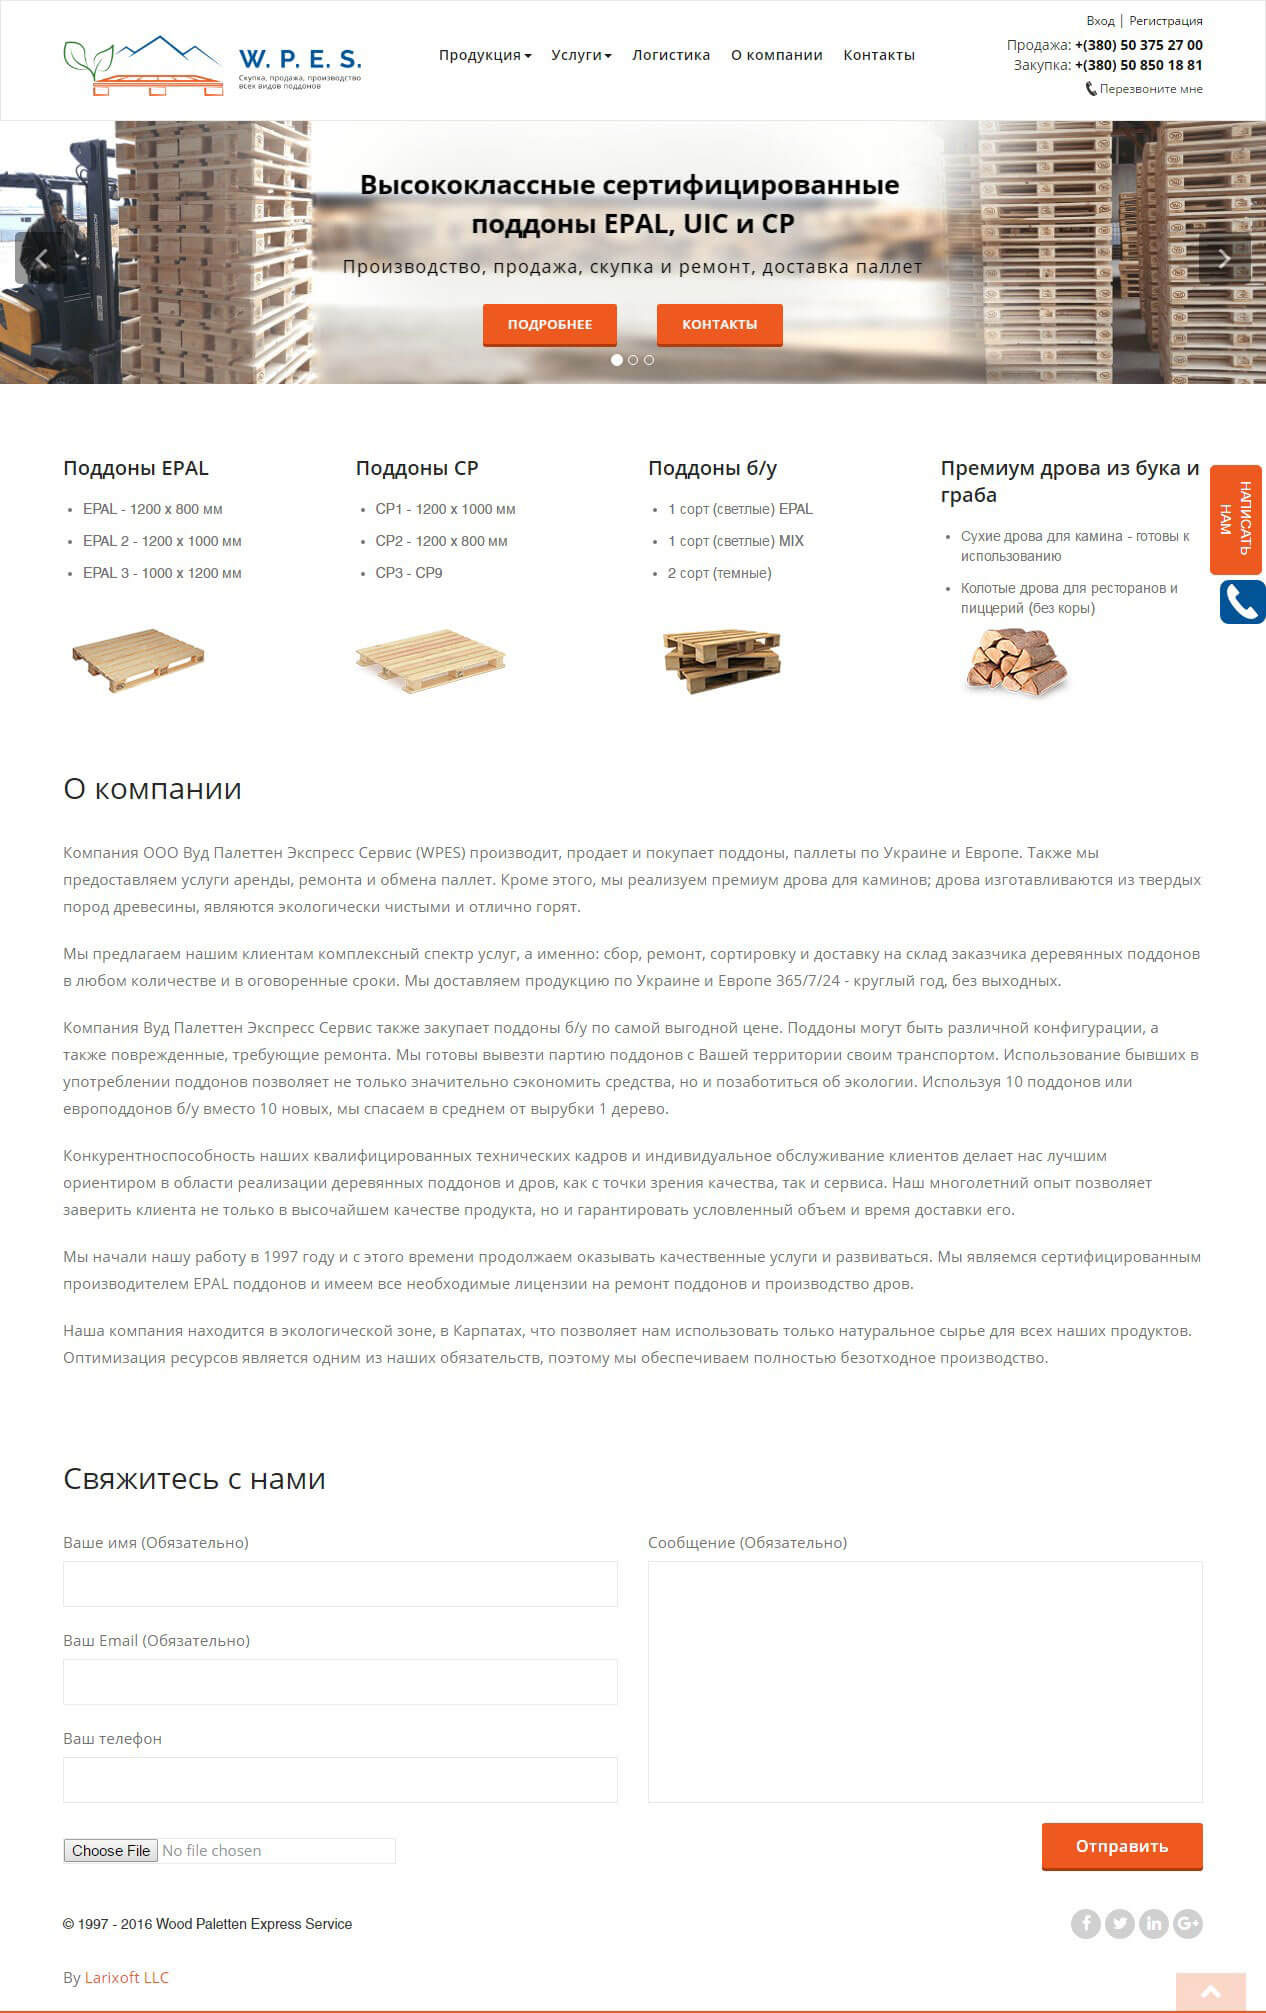 Portfolio - pallets manufacturing company WPES